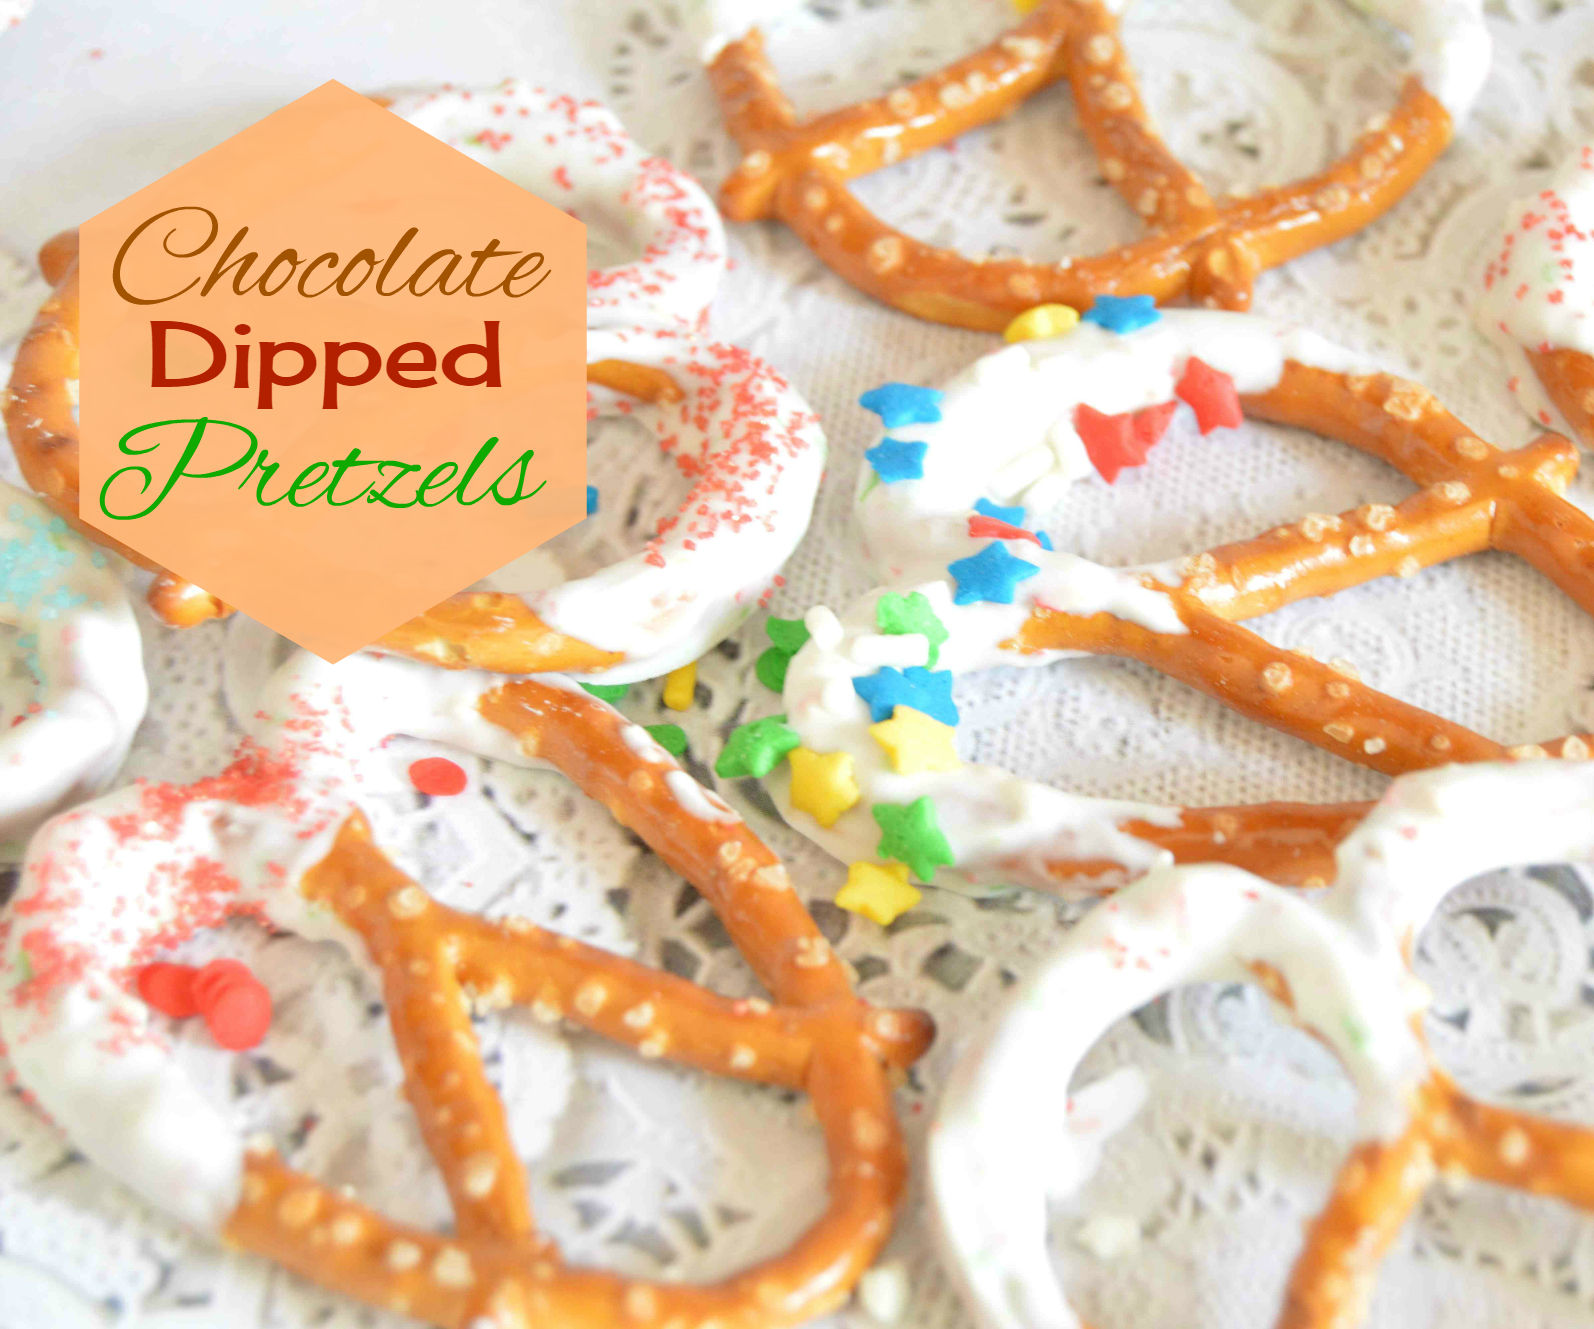 How to make Chocolate Dipped Pretzels - Last Minute Edible gifts